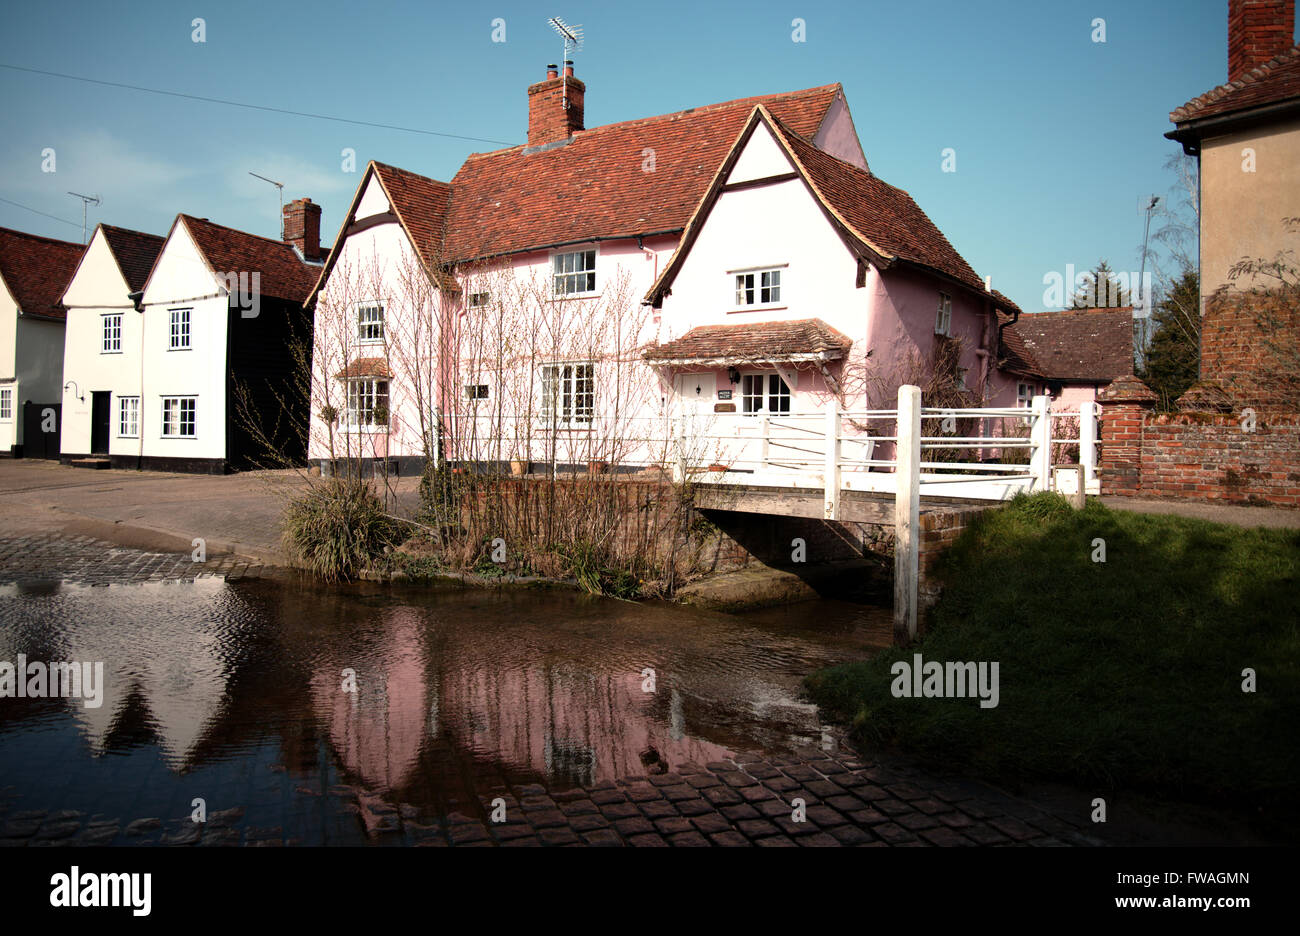 Reflections in a river at Kersey, Suffolk, England. A footbridge over a river ford in a sleepy English village - Stock Image